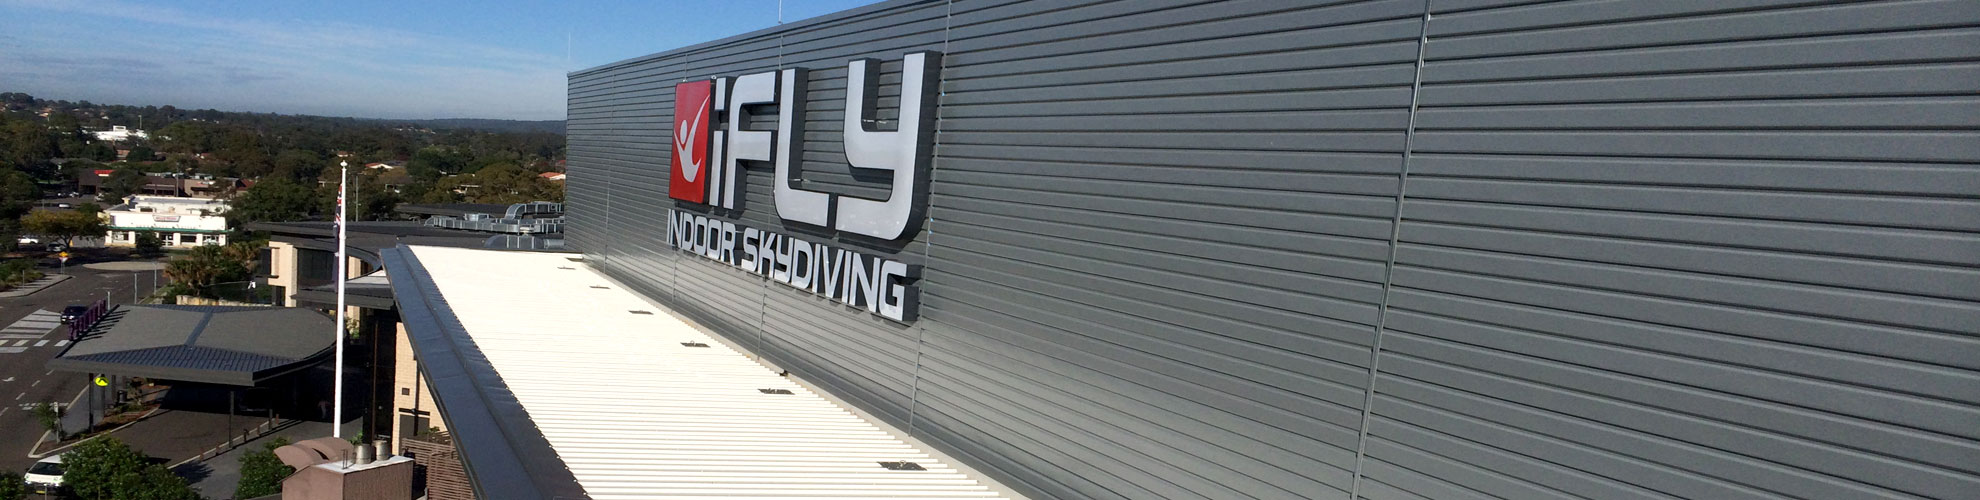 iFly Downunder commercial metal roofing project by Quikdeck Roofing contractors Sydney NSW